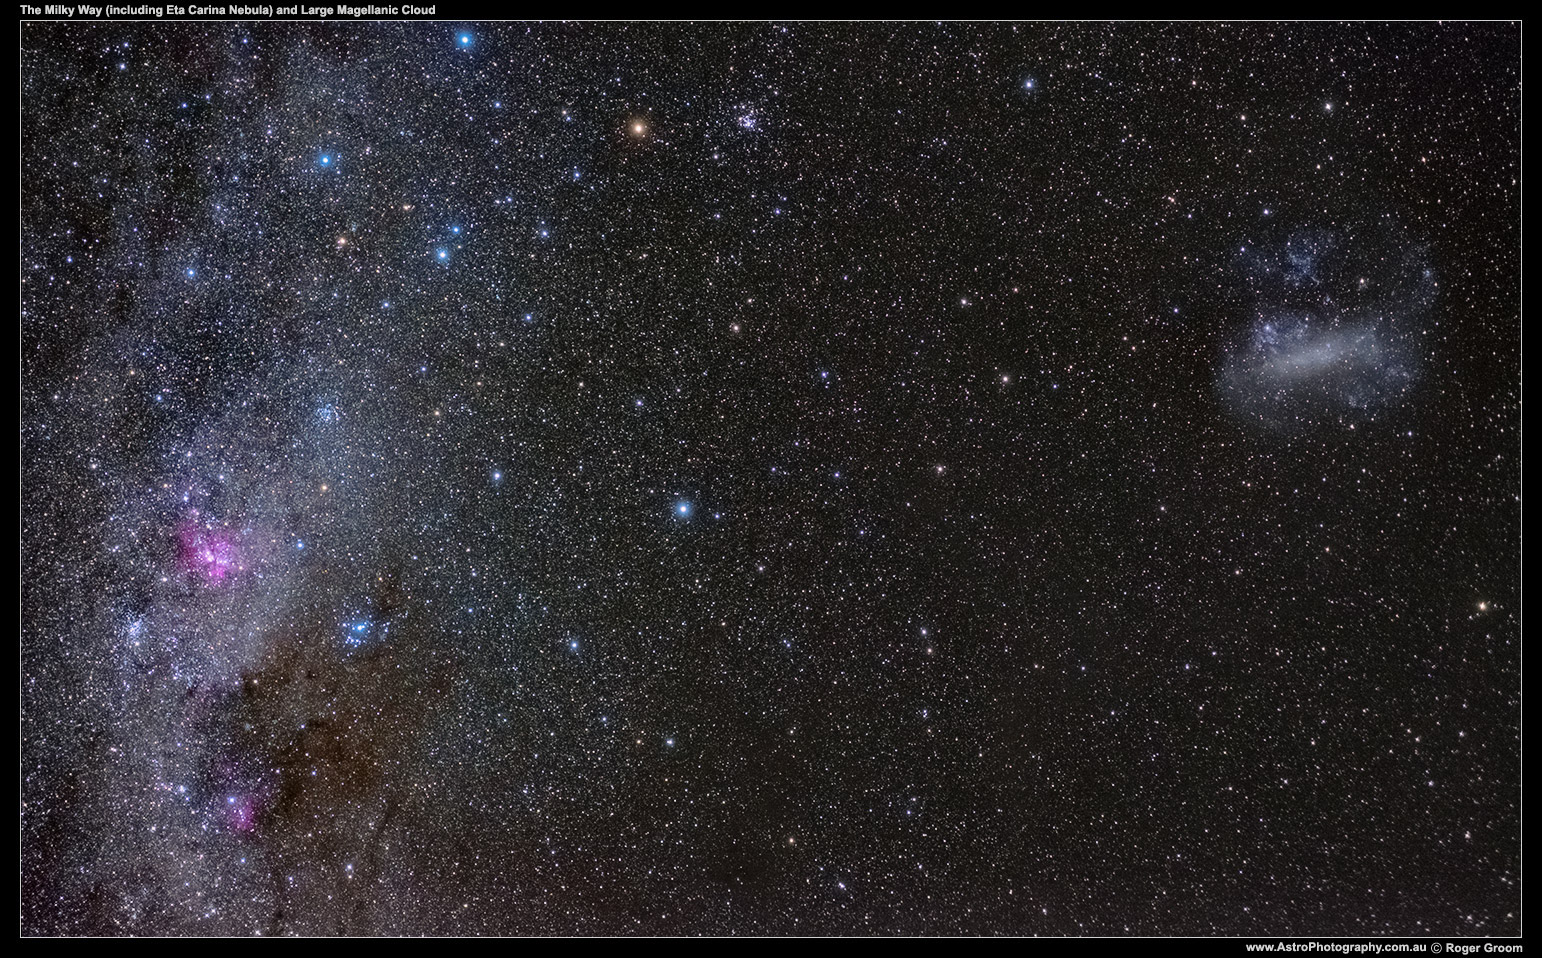 LMC-and-Milky-Way-with-Eta-Carina-(Fuji-X-E2-6400ISO-30s)